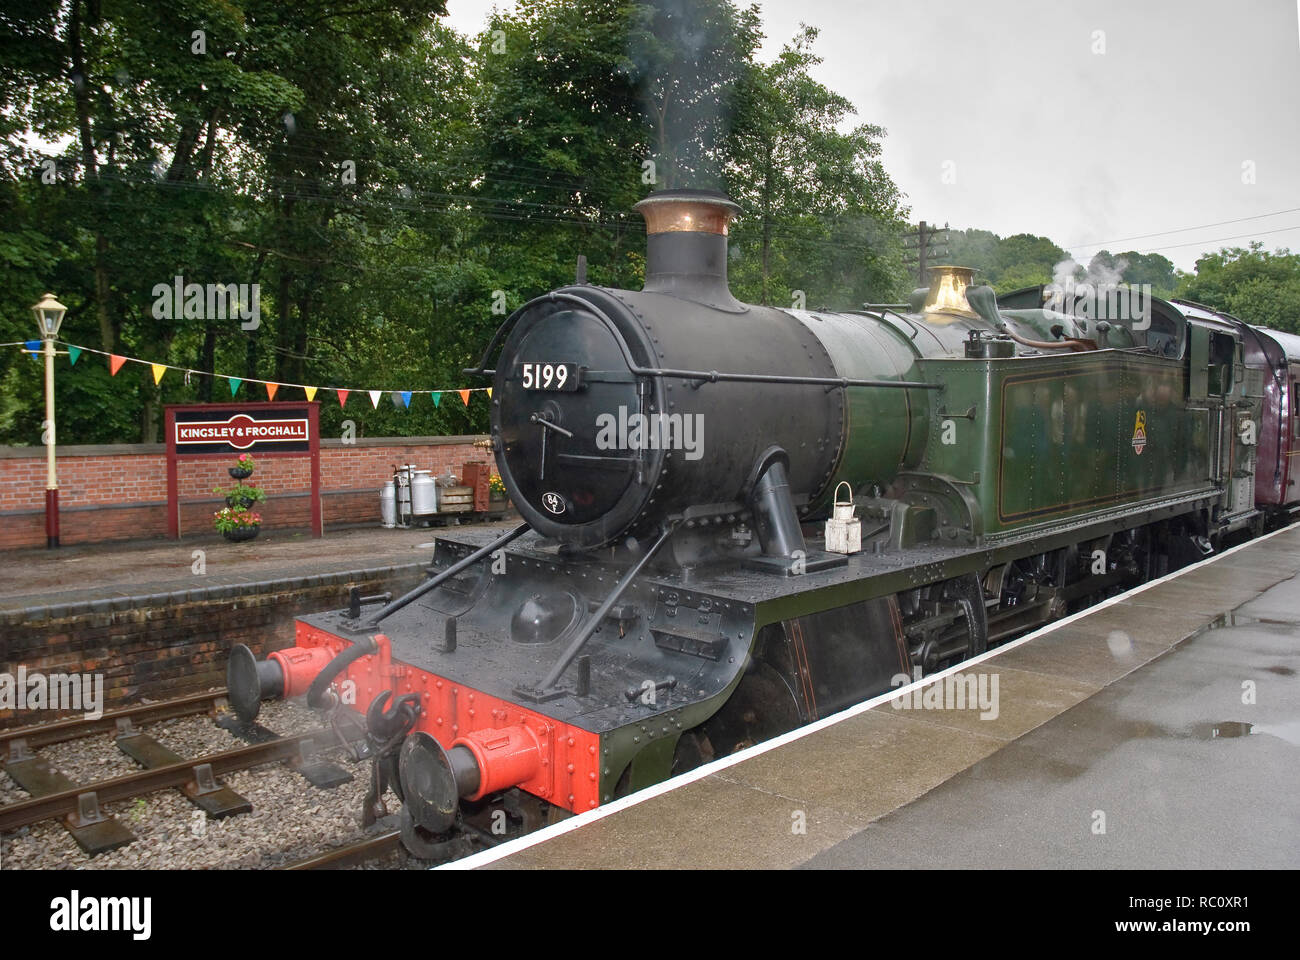 The Churnet Valley railway. Kingsley and Froghall station. GWR Prairie 5199 from the Lllangollen Railway - Stock Image